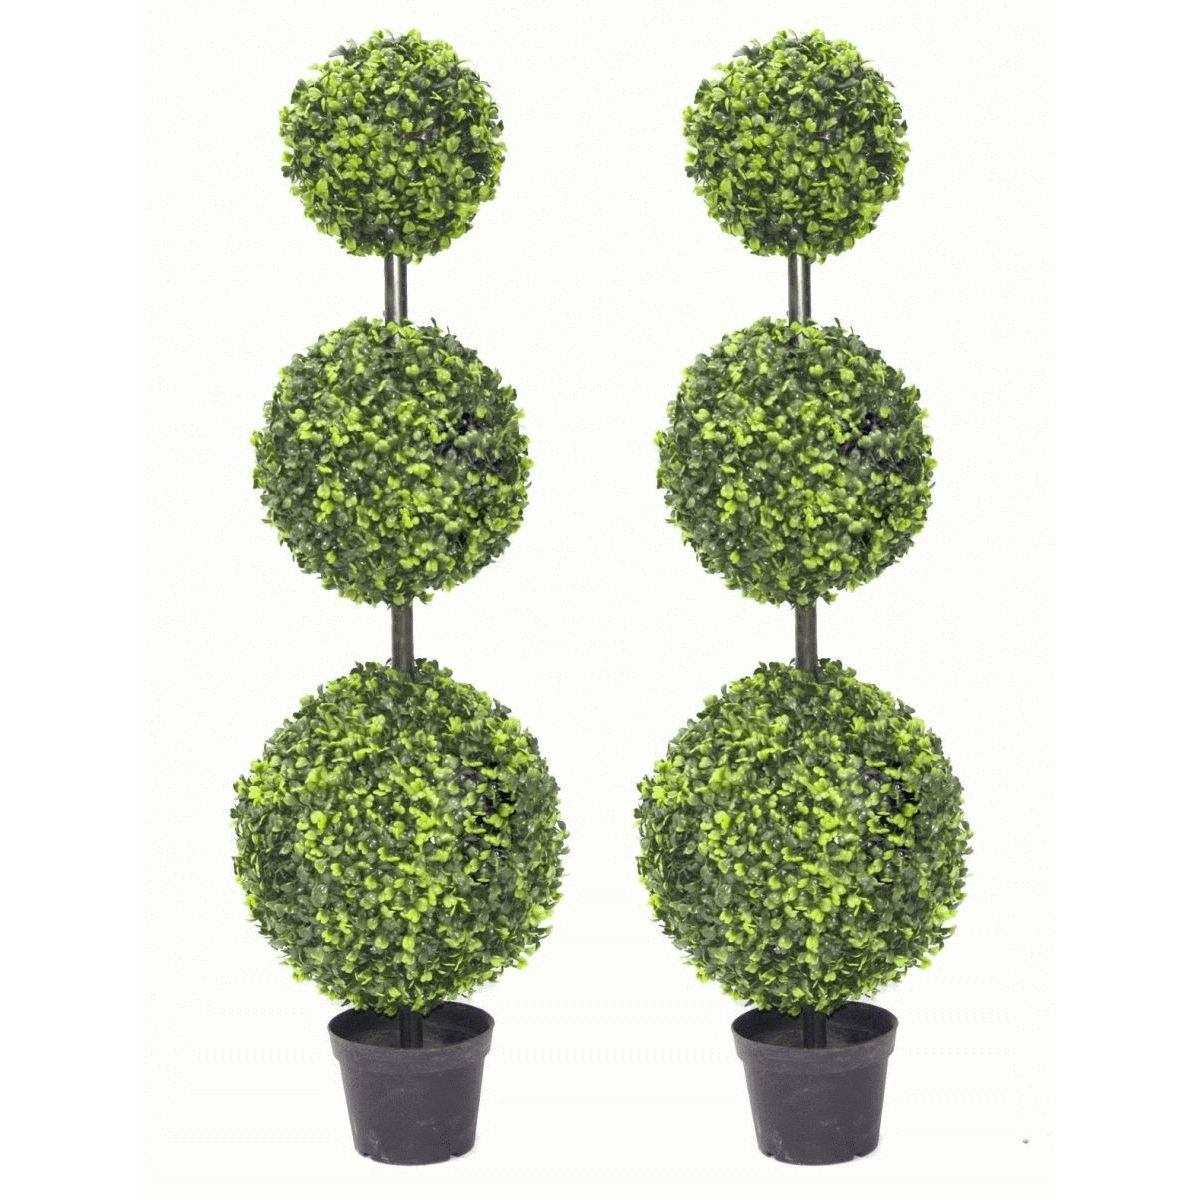 Lifelike Plants Pair Of 90cm 3ft Large Artificial Boxwood Tree Topiary